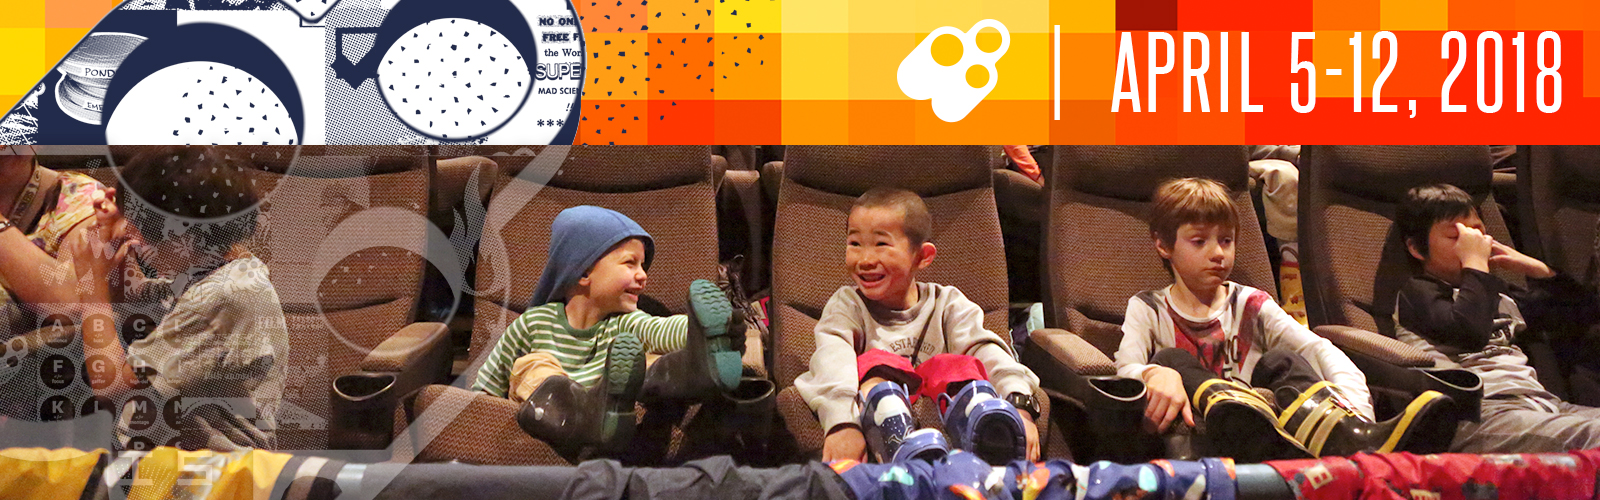 April 5-12. Children seated in a theater, giggling